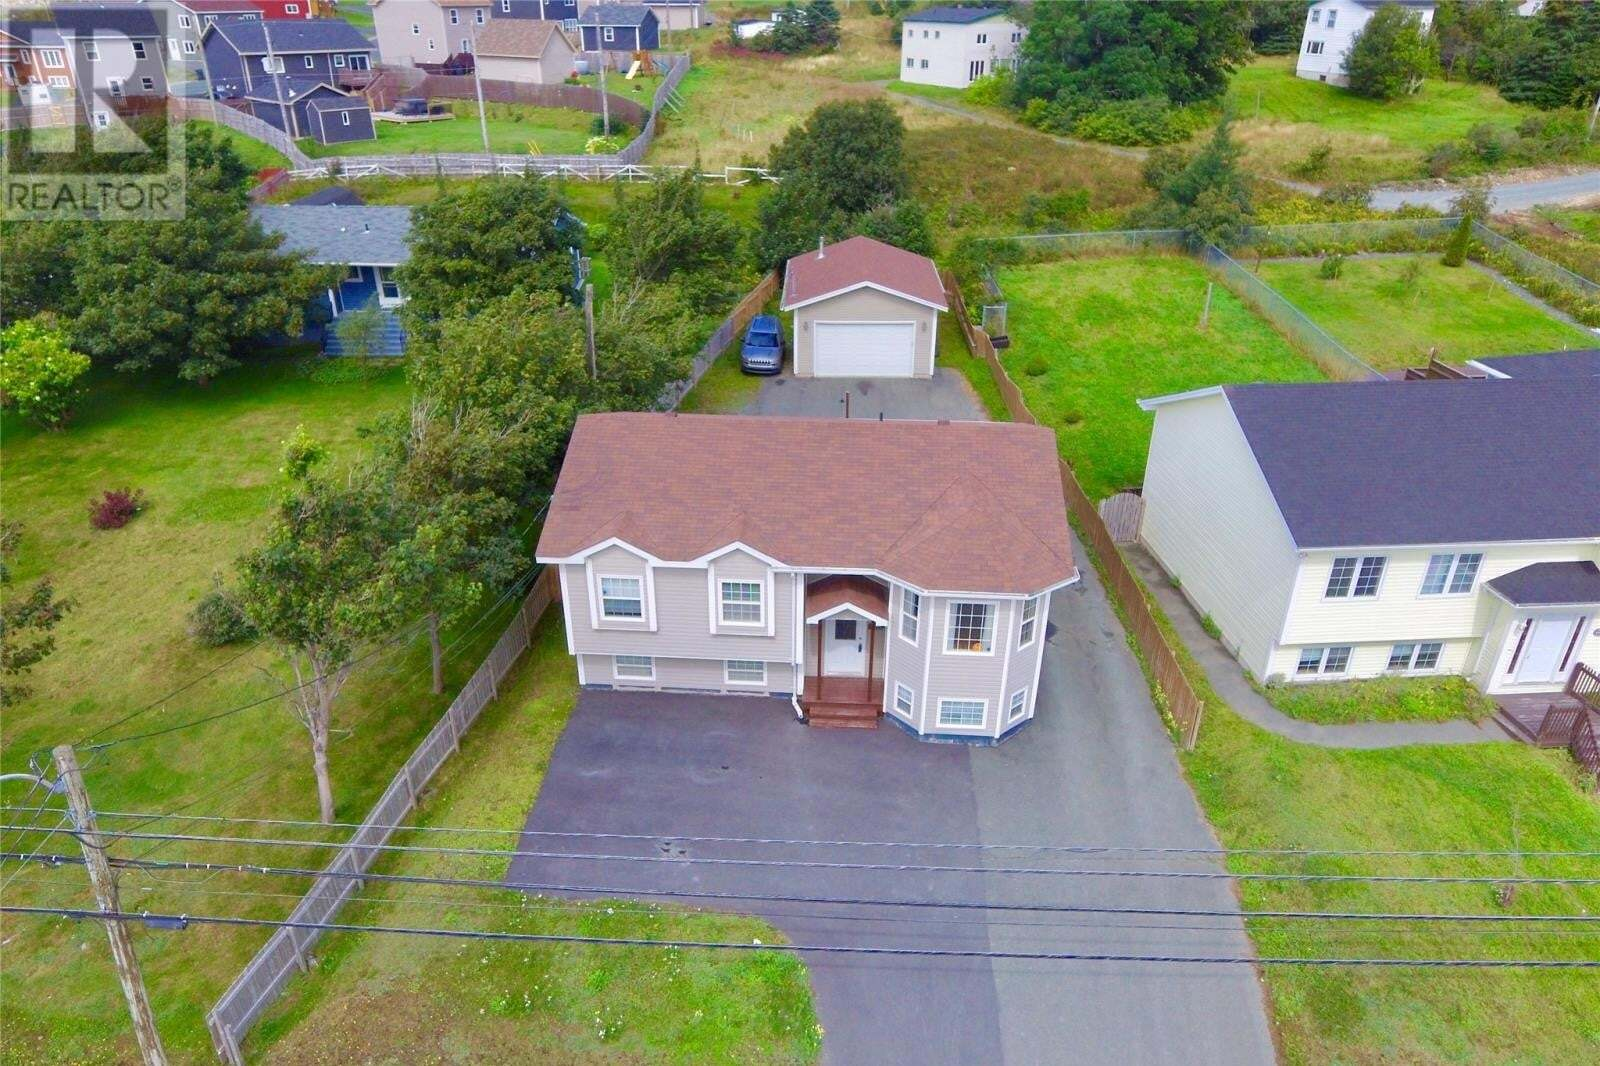 Home for sale at 1624 Topsail Rd Paradise Newfoundland - MLS: 1213371